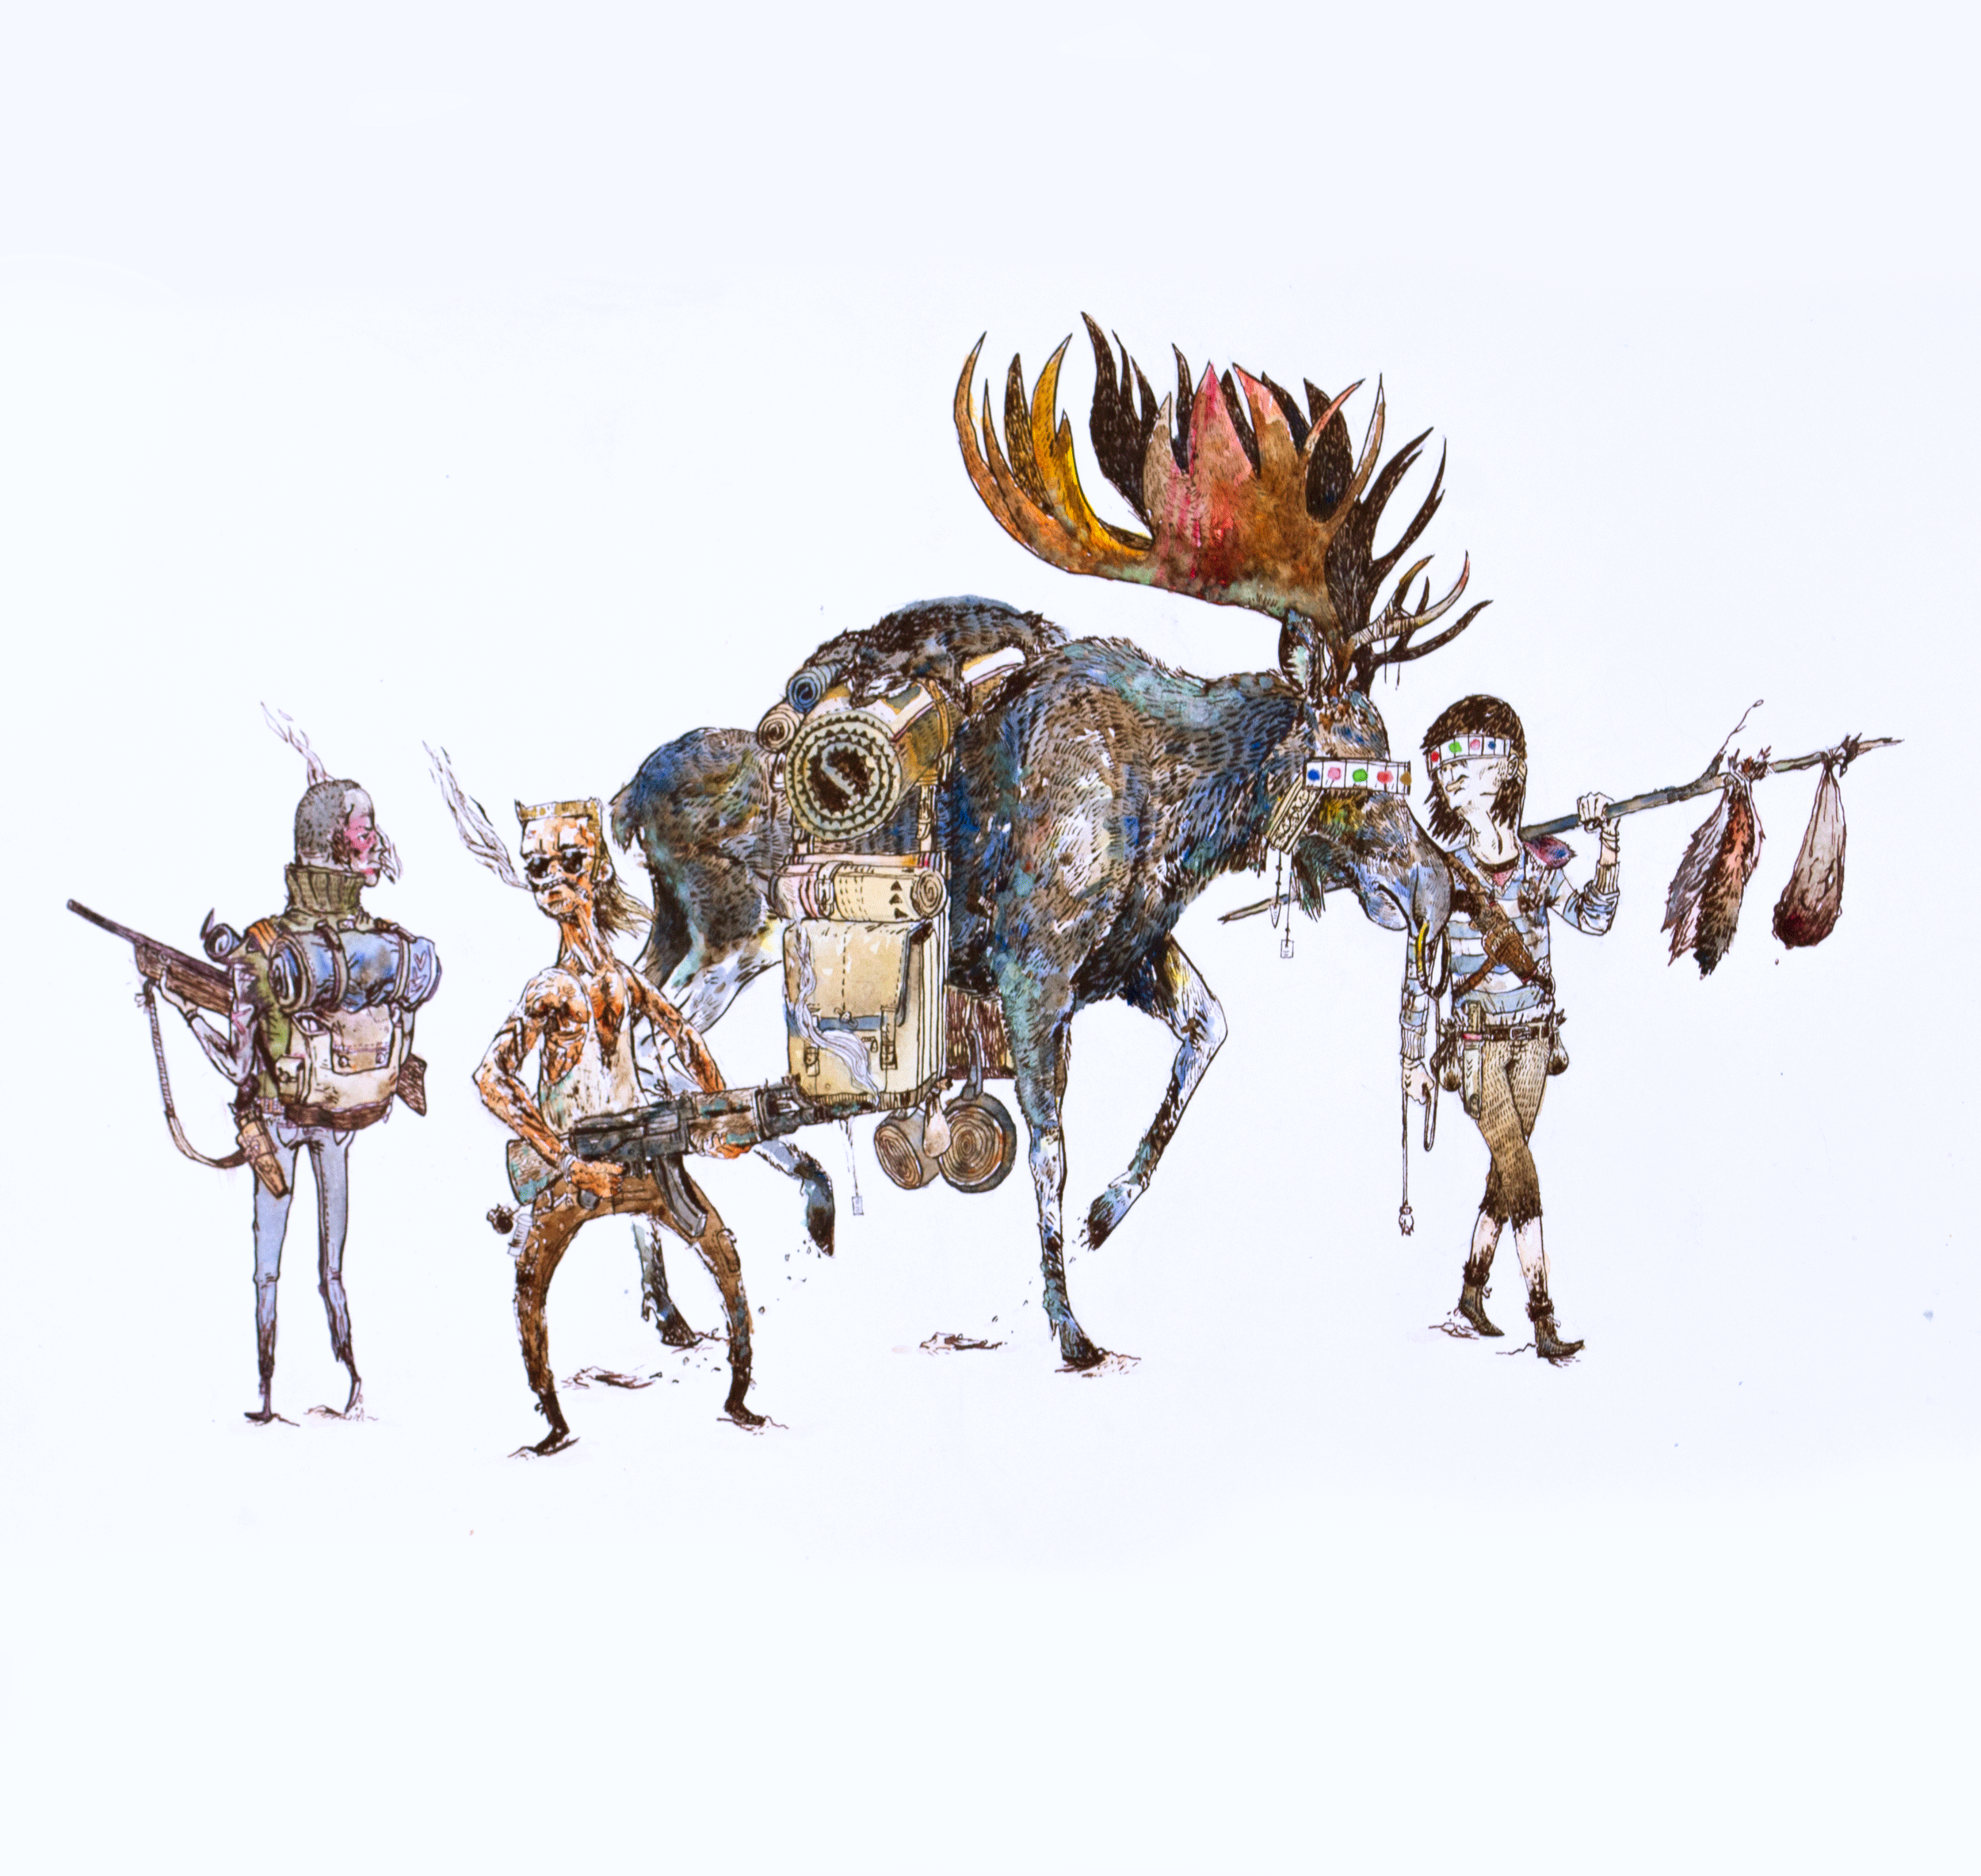 Wastelanders (2011) - Watercolour, Ink